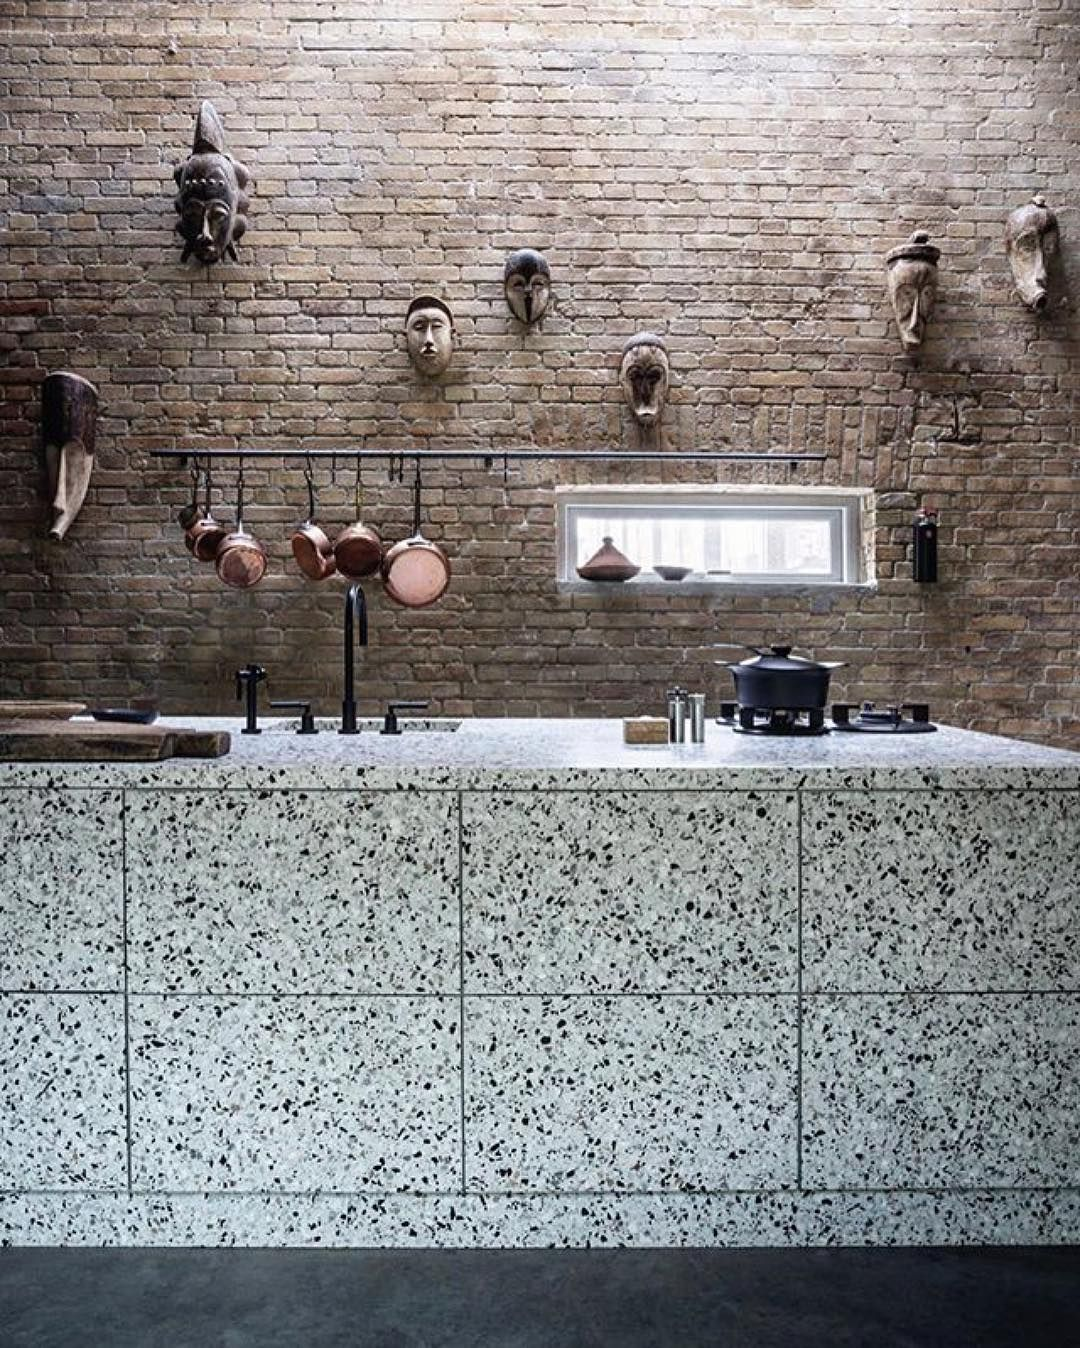 Peters Esszimmer In Münster M T I Like The Idea Of Your Terrazzo Kitchen Counter Facing The